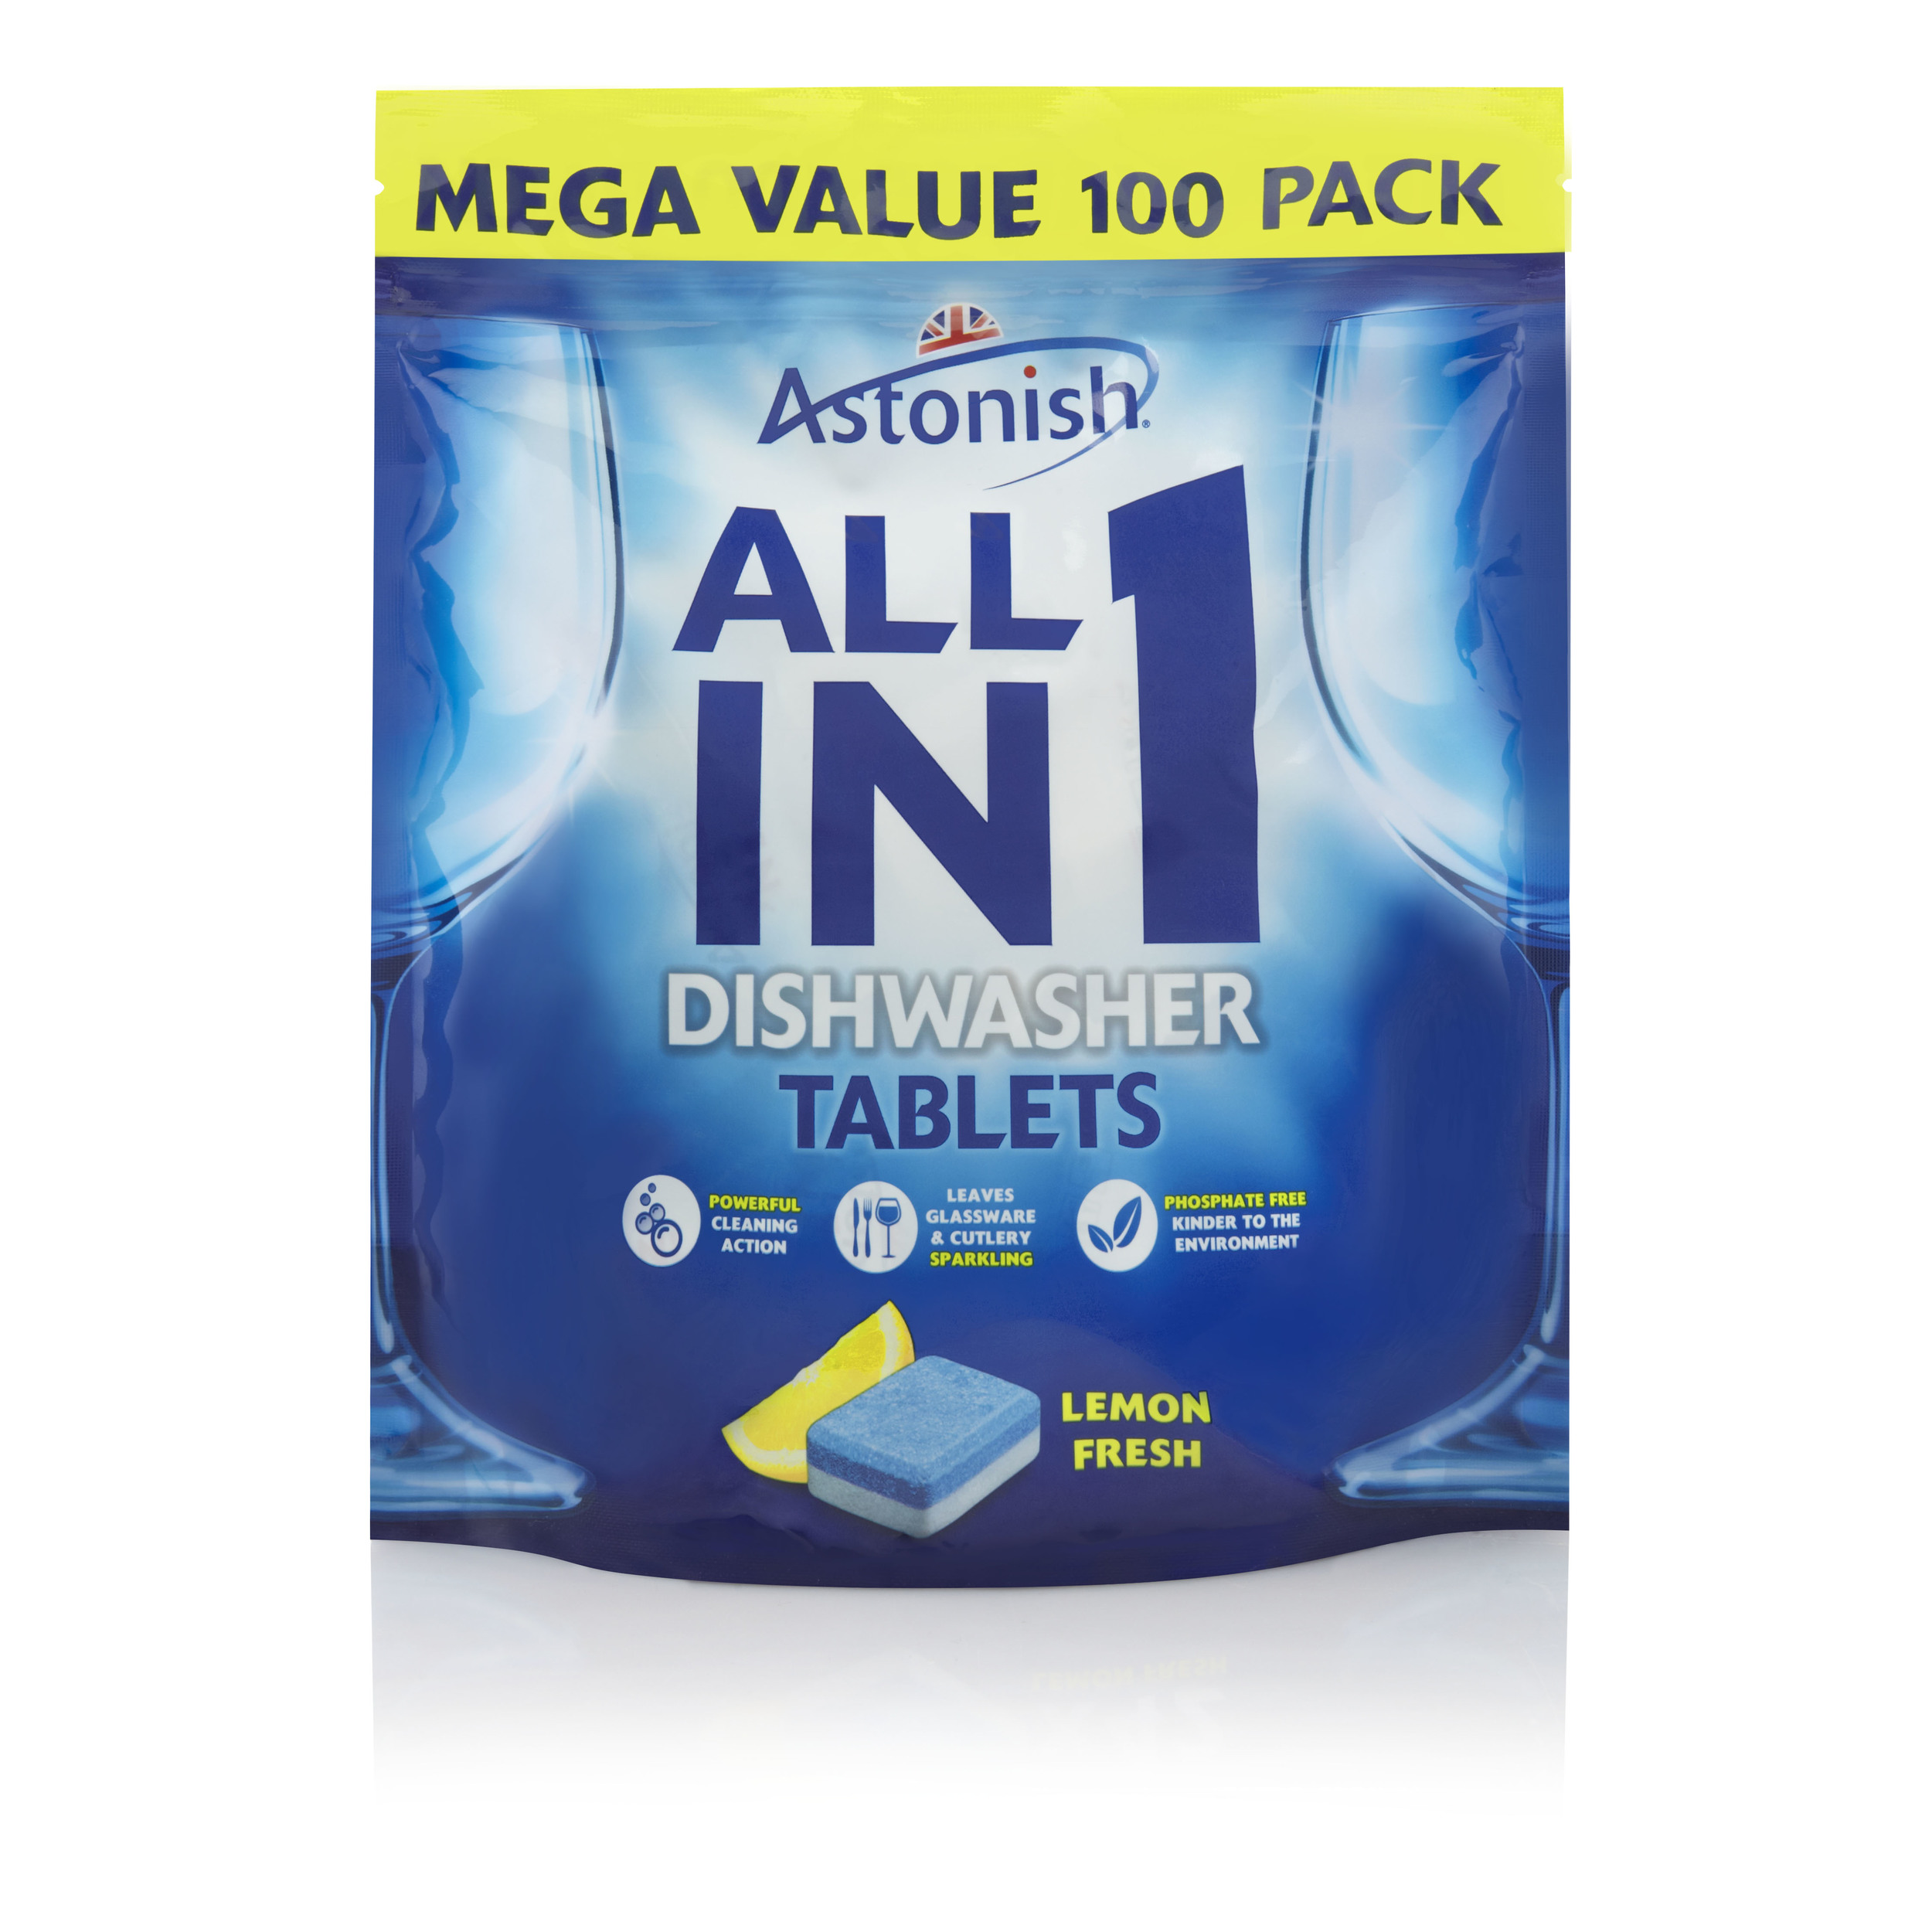 Astonish All in 1 Dishwasher Tablets Mega Pack 100.jpg